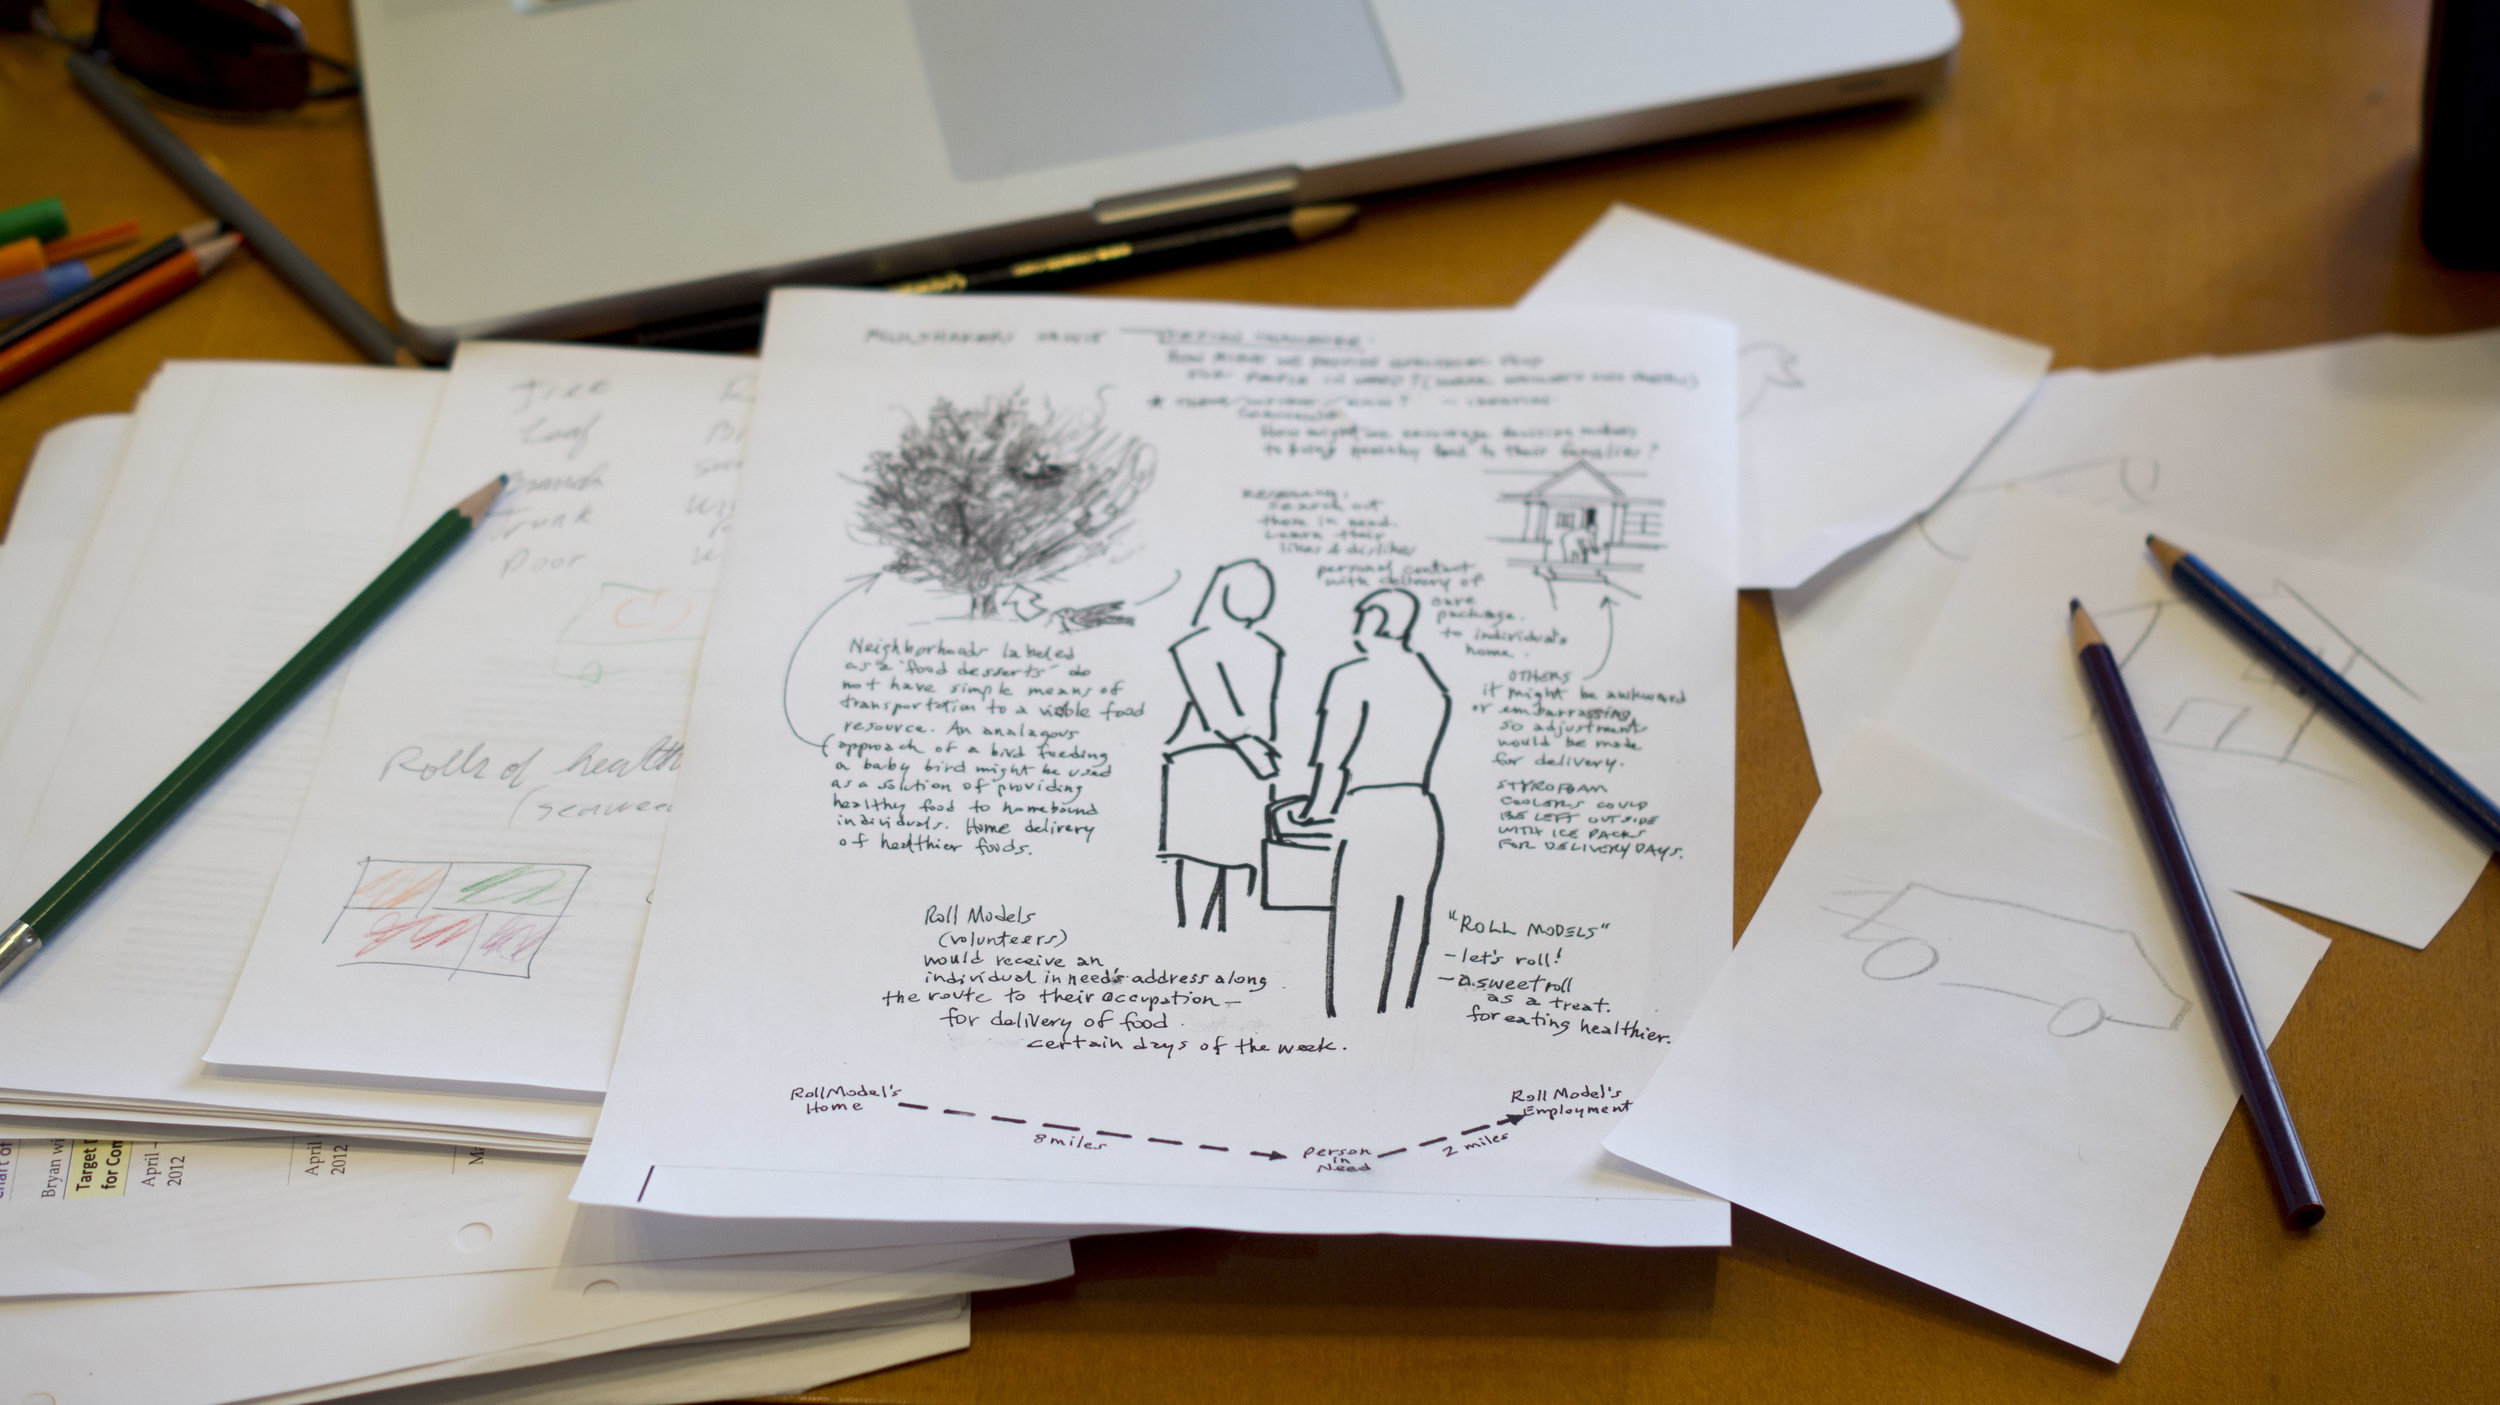 This ideation session generated sketches of services an enterprise could offer to future customers